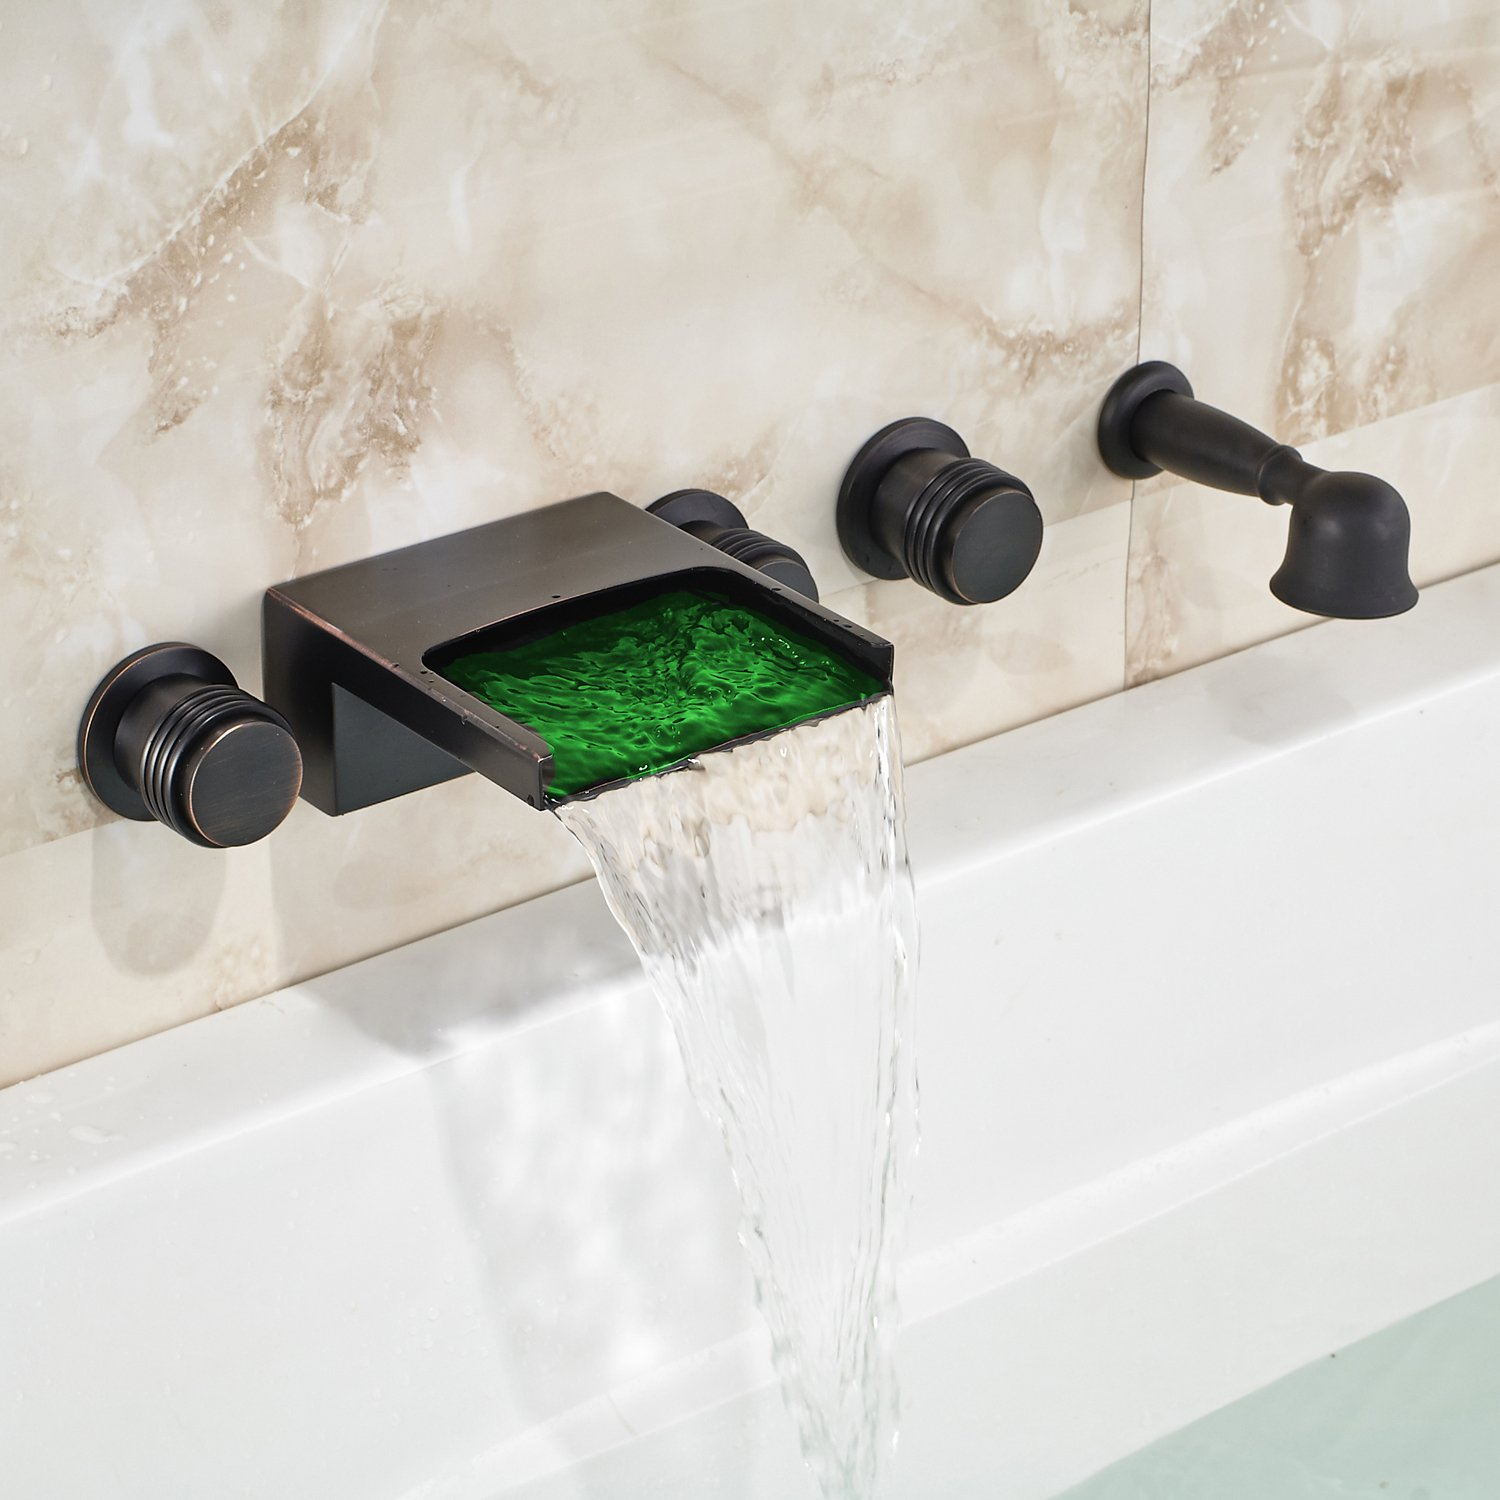 fixtures and faucets sinks bathroom clawfoot fossett shower delta modern tub bathtub faucet sink